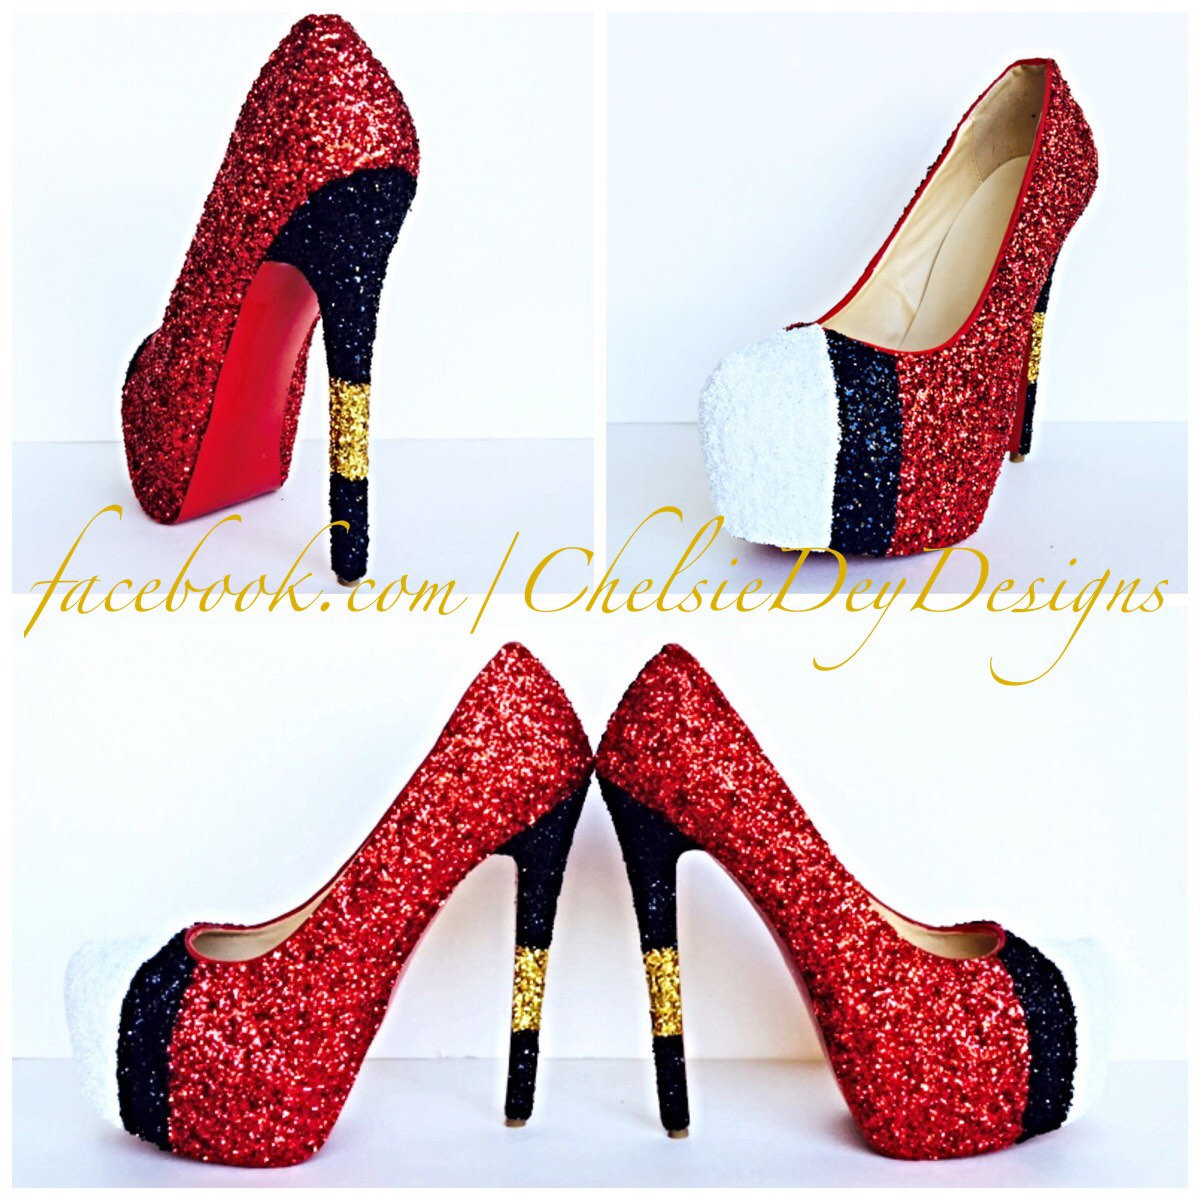 b9e779867 Glitter High Heels - Black and Red Pumps - Swoop Platform Shoes ...